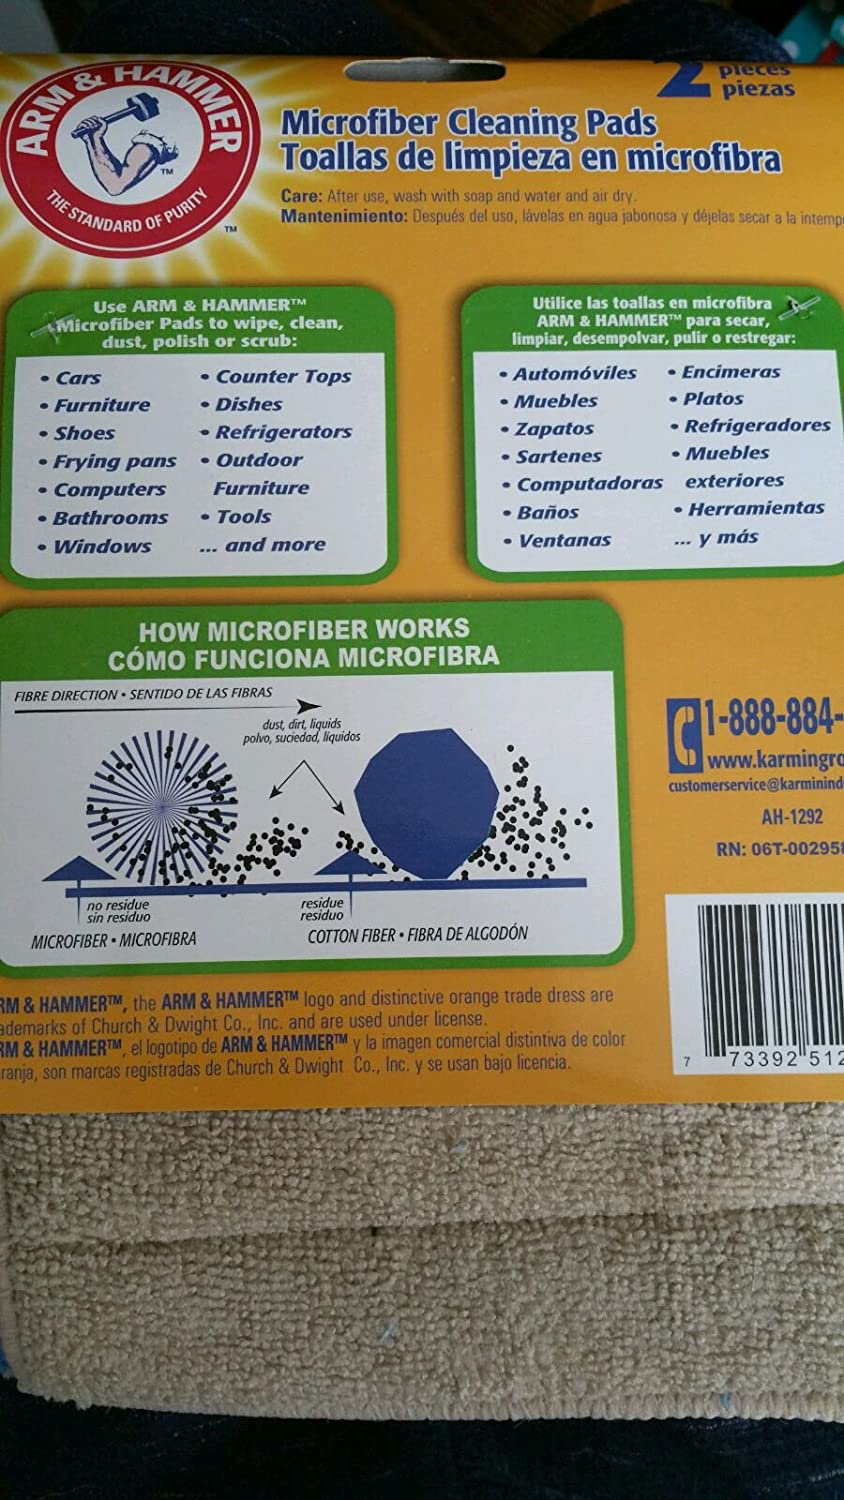 Amazon.com: Arm & Hammer Microfiber Cleaning Pads 2-Pads in a Pack: Health & Personal Care